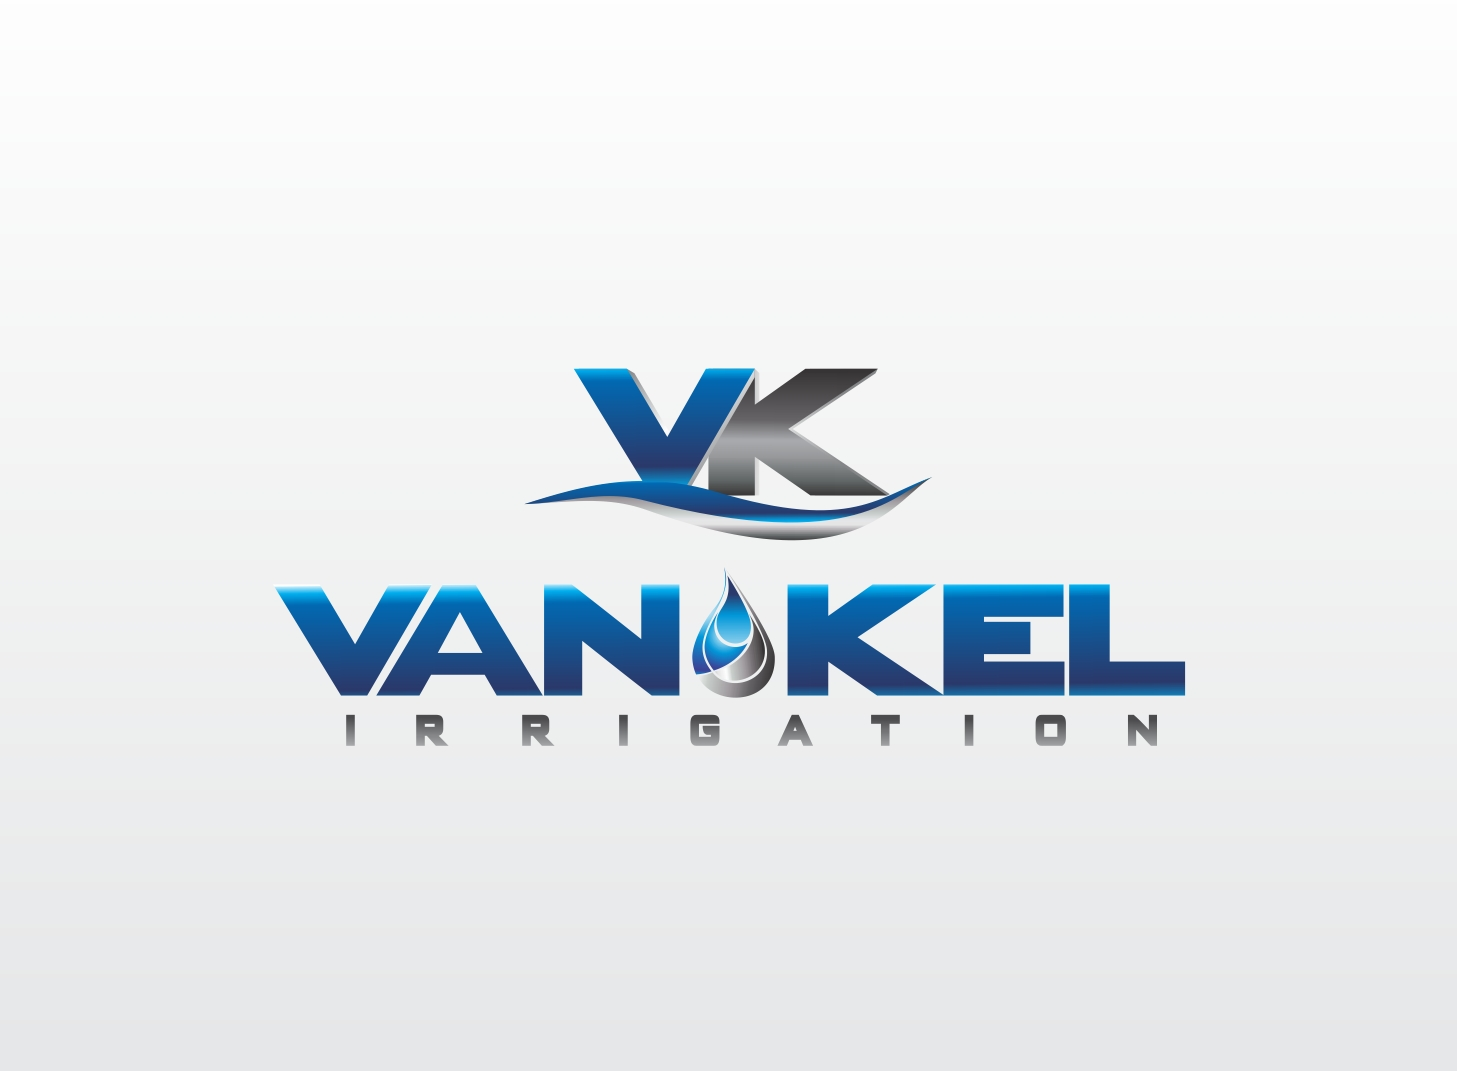 Logo Design by Zdravko Krulj - Entry No. 259 in the Logo Design Contest Van-Kel Irrigation Logo Design.